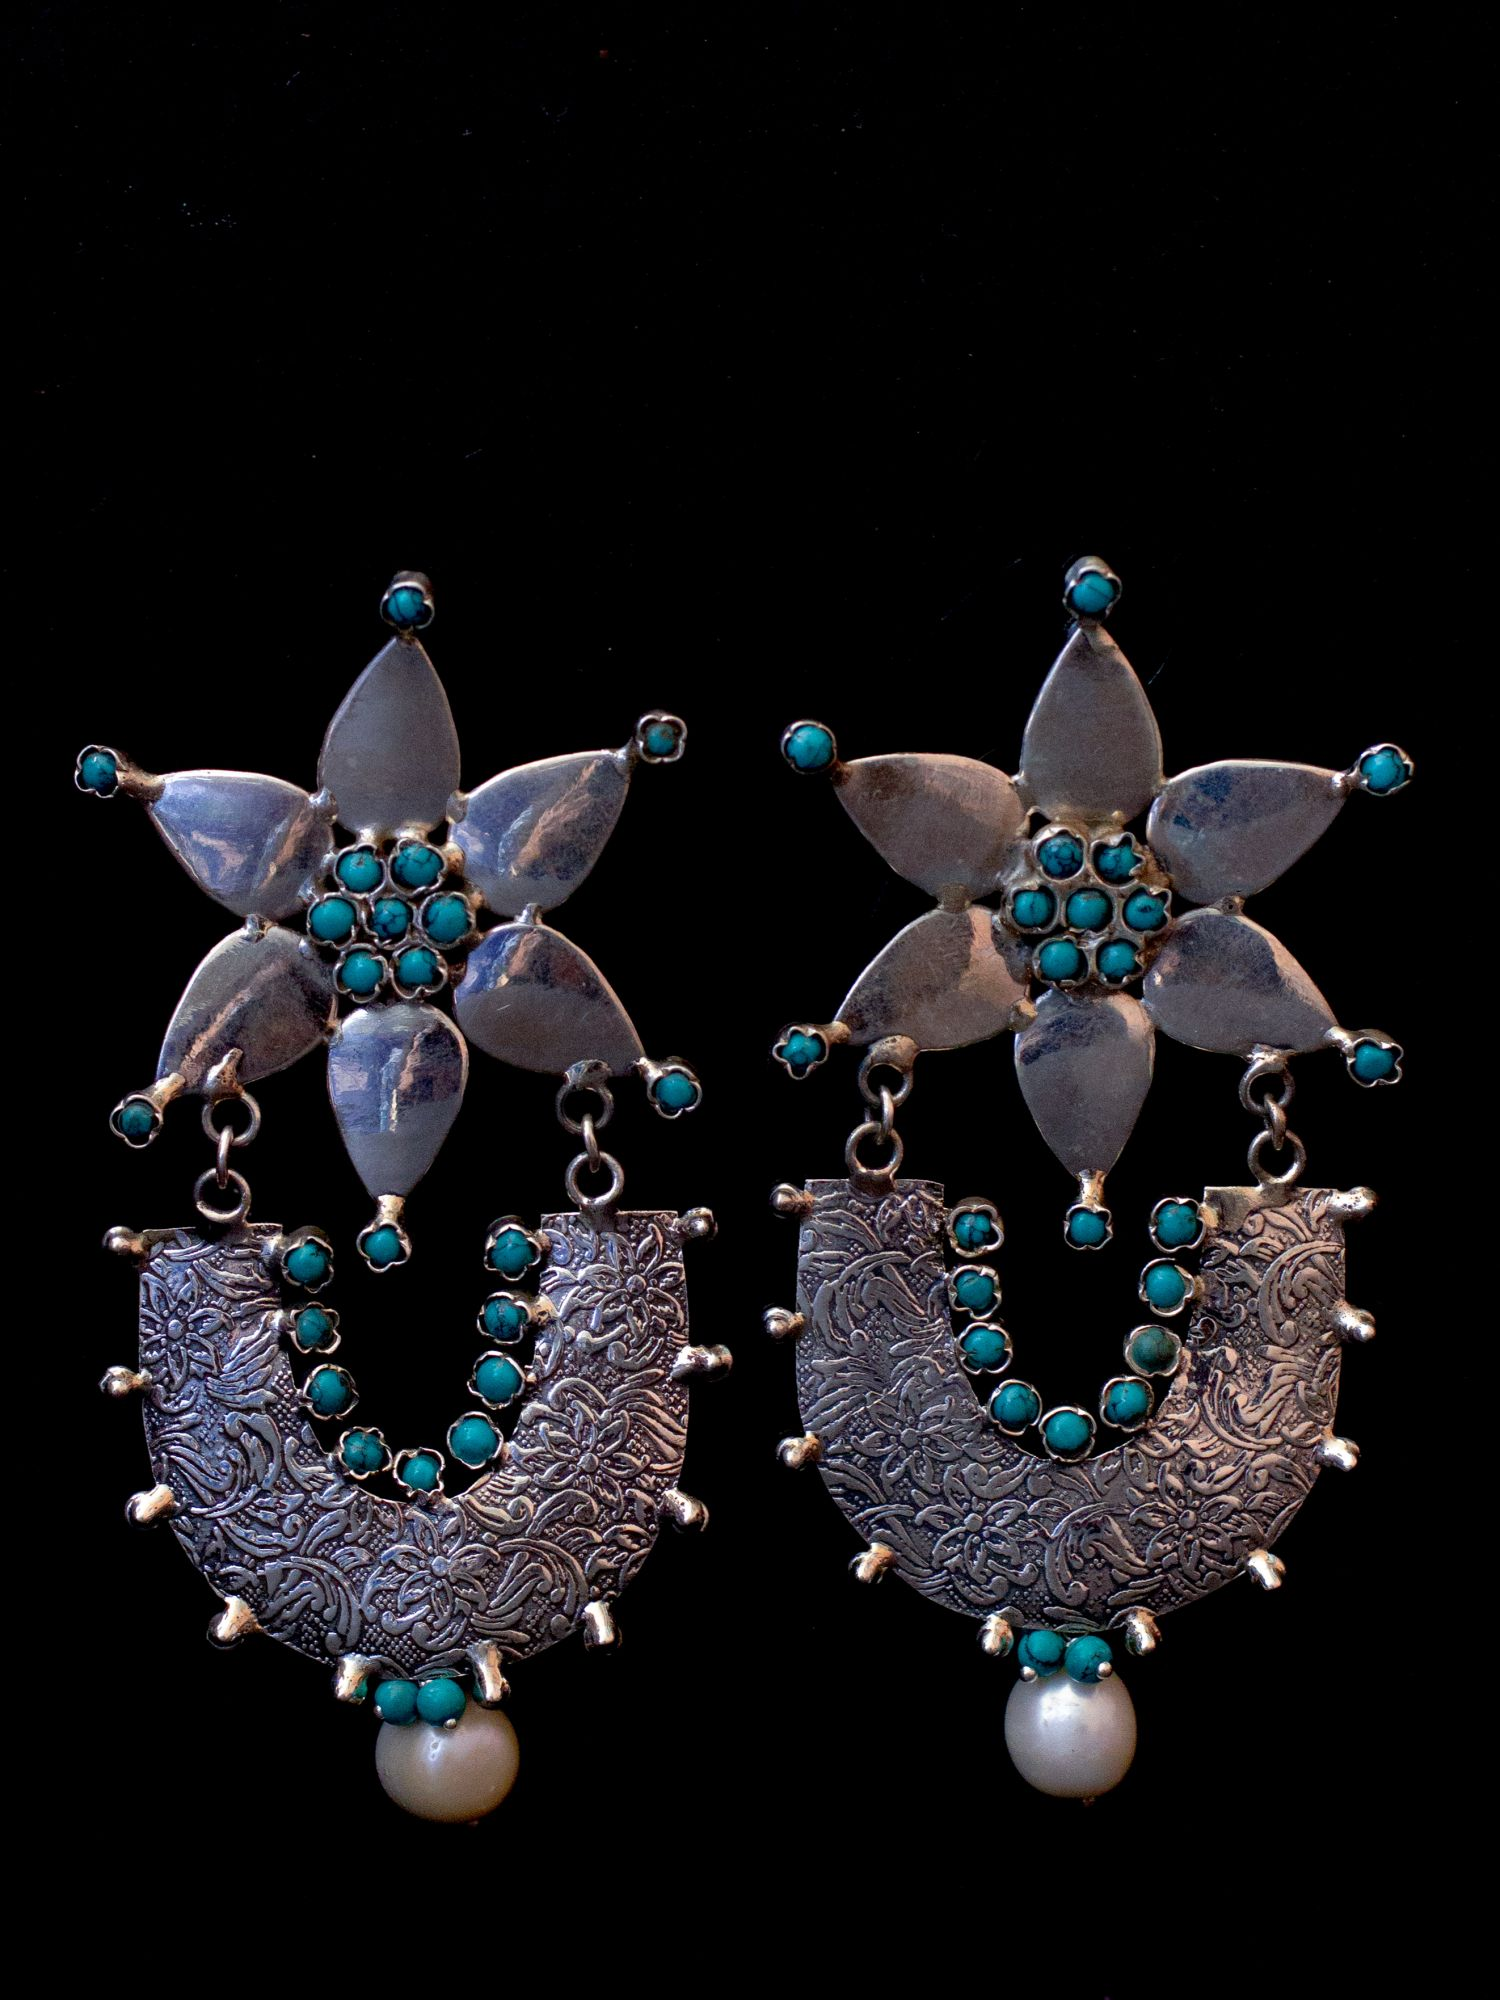 The Turquoise Danglers